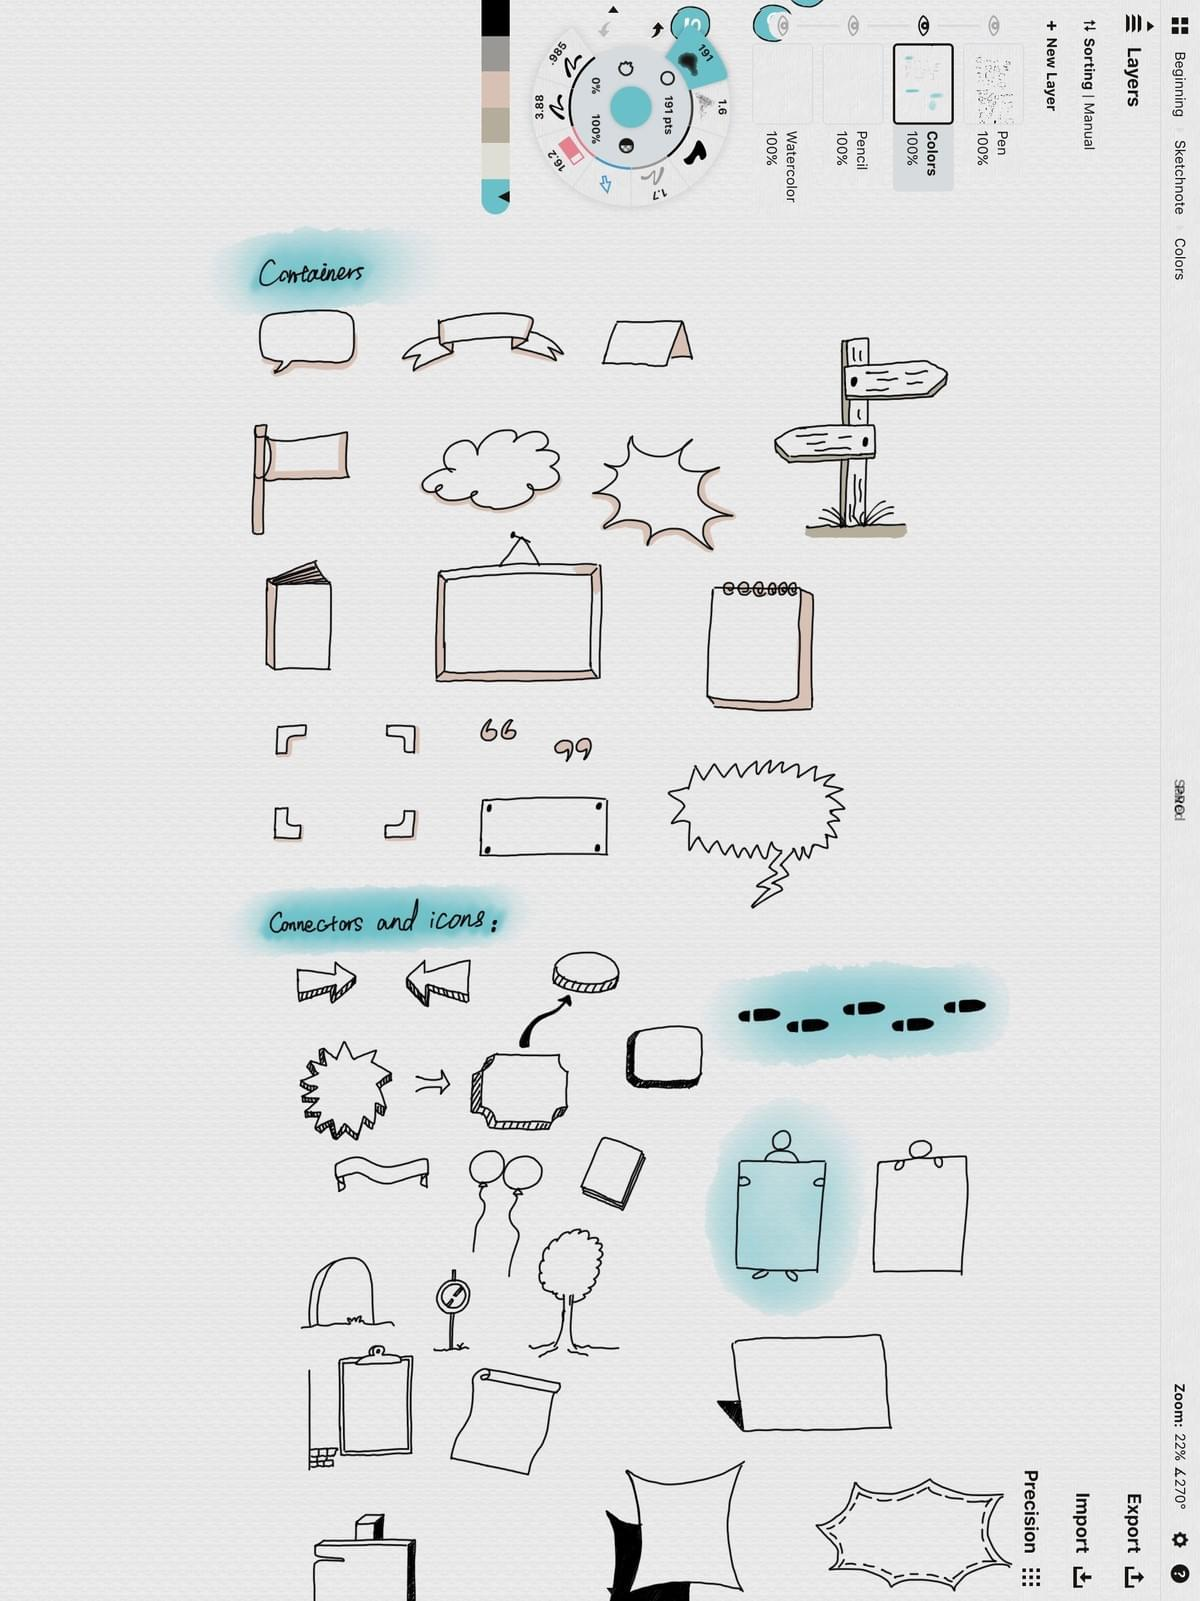 sketchnote containers